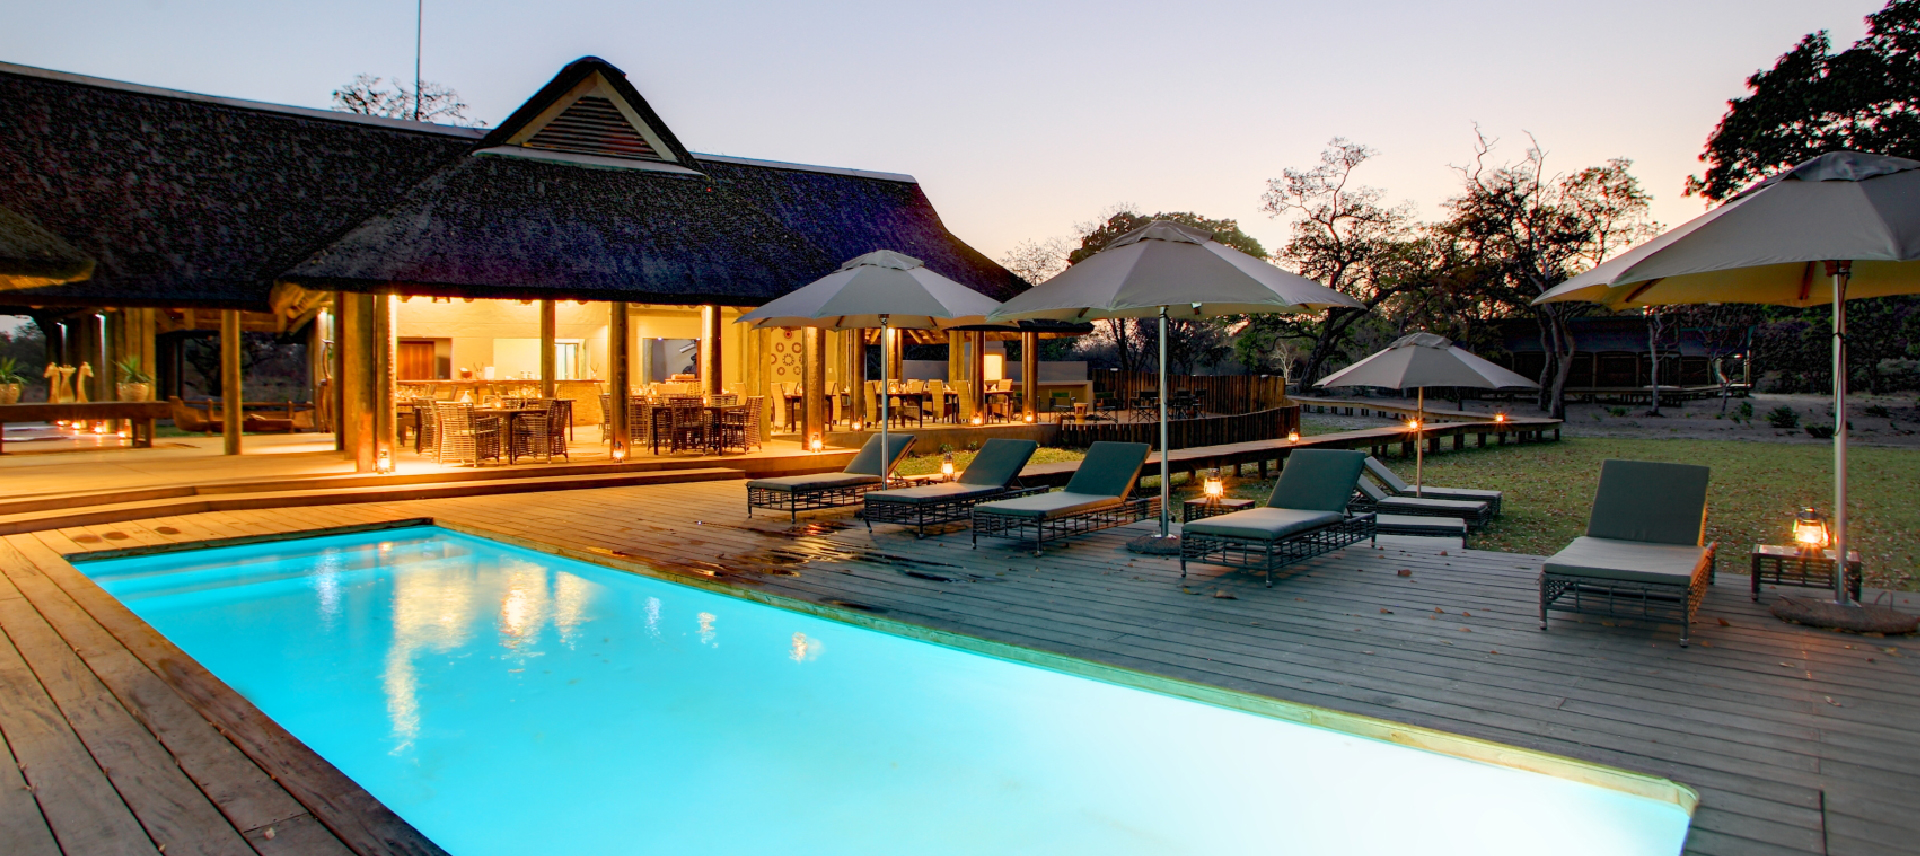 Fathala Lodge Pool Area at Night